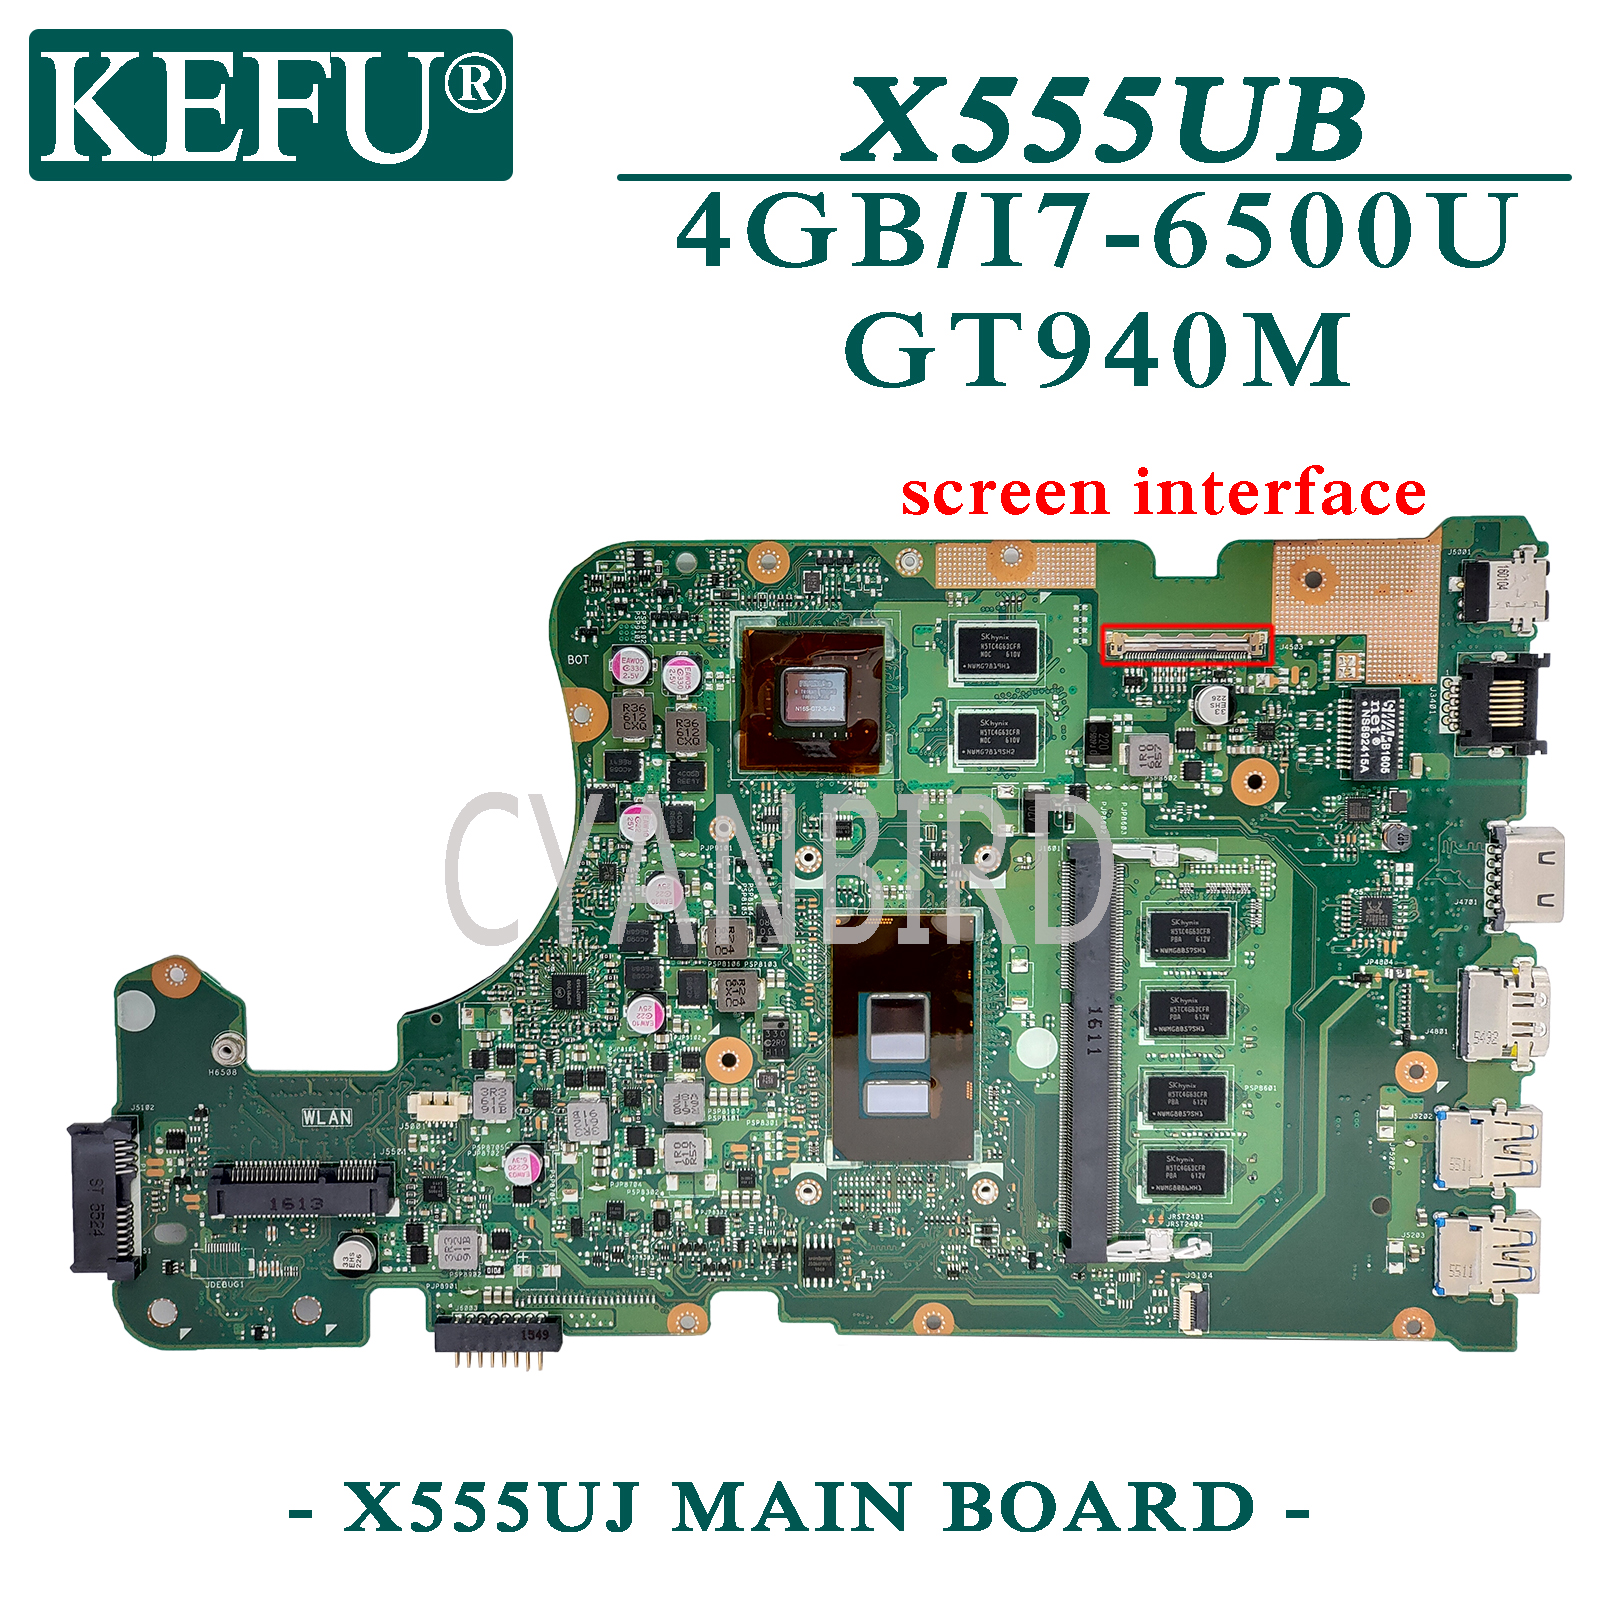 KEFU <font><b>X555UJ</b></font> original mainboard for <font><b>ASUS</b></font> X555UB X555UF F555U with 4GB-RAM I7-6500U GT940M Laptop motherboard image